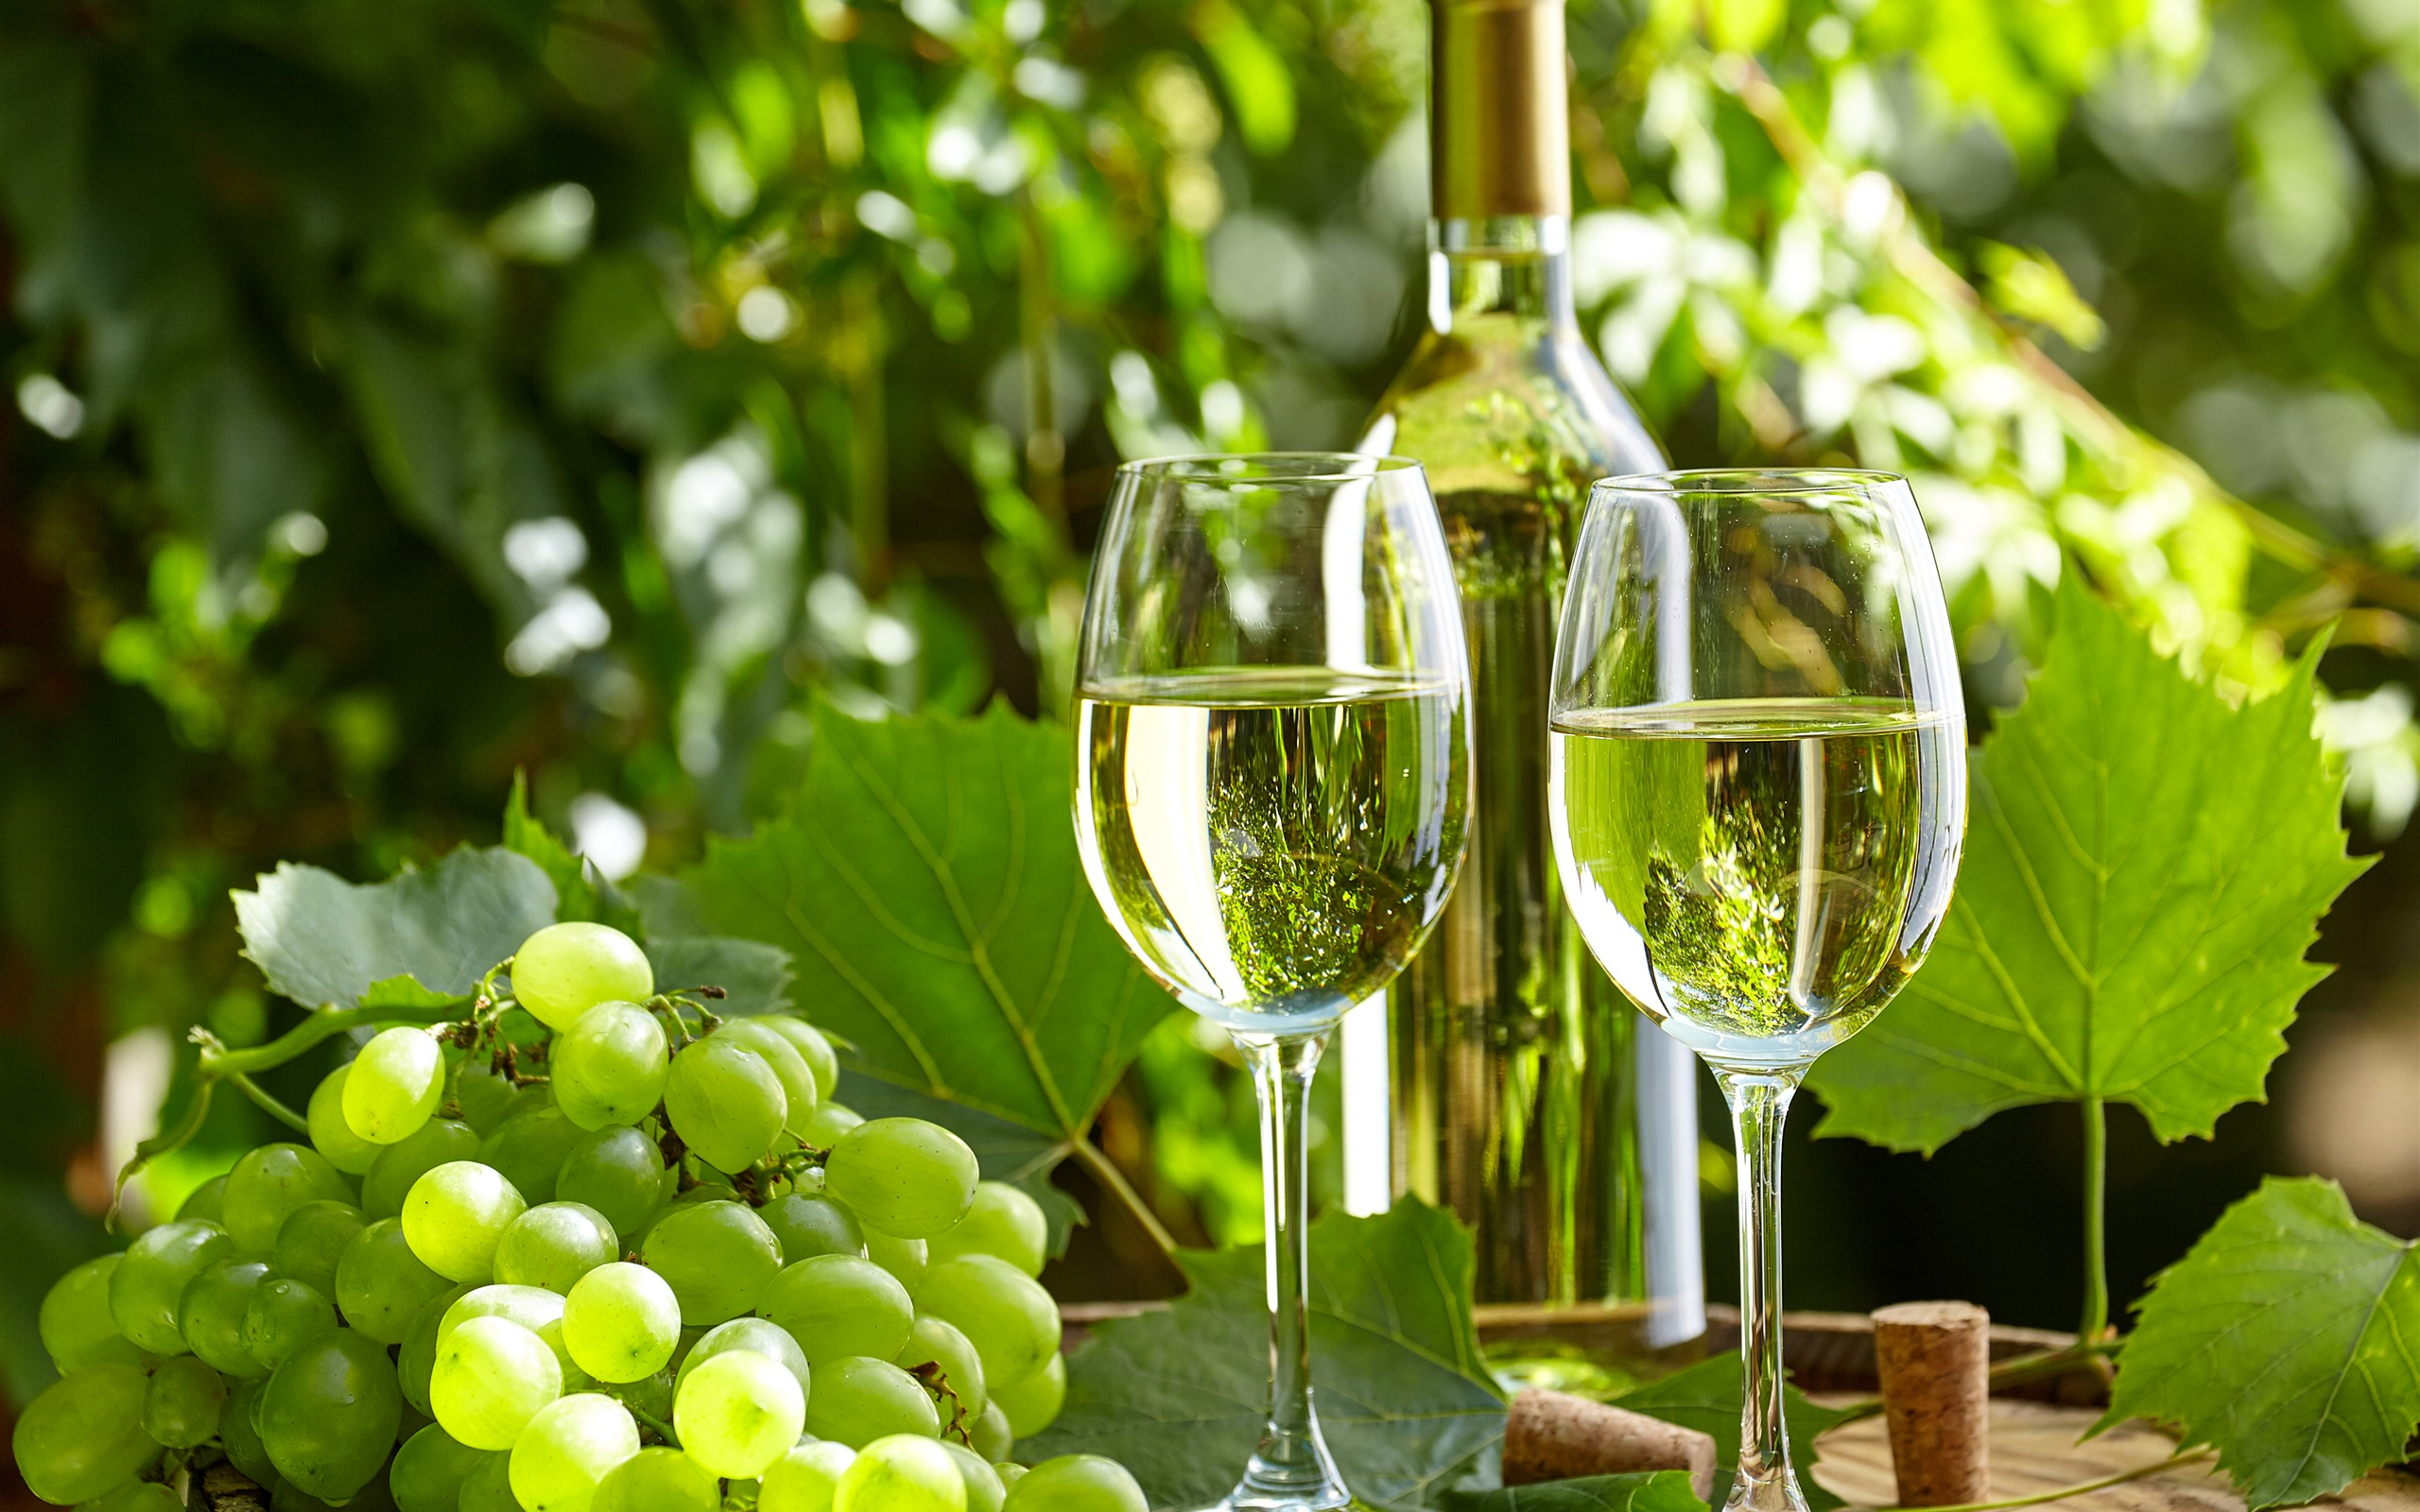 Wallpaper Green Grapes Wine Bottle Glass Cups Sunshine